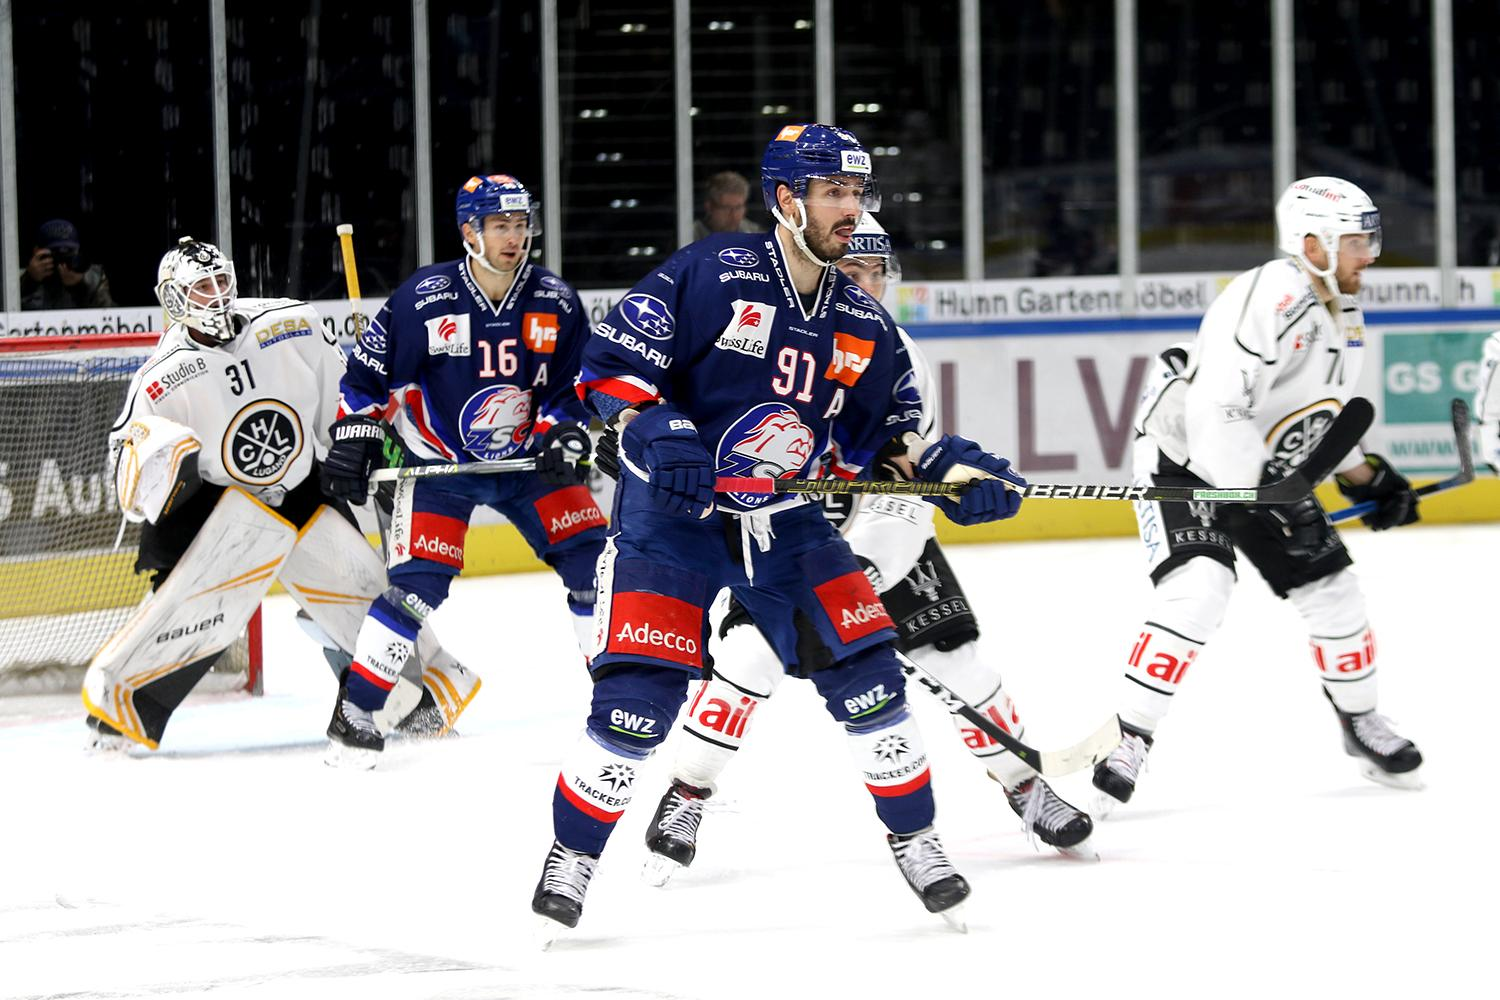 Photo hockey match Zürich - Lugano